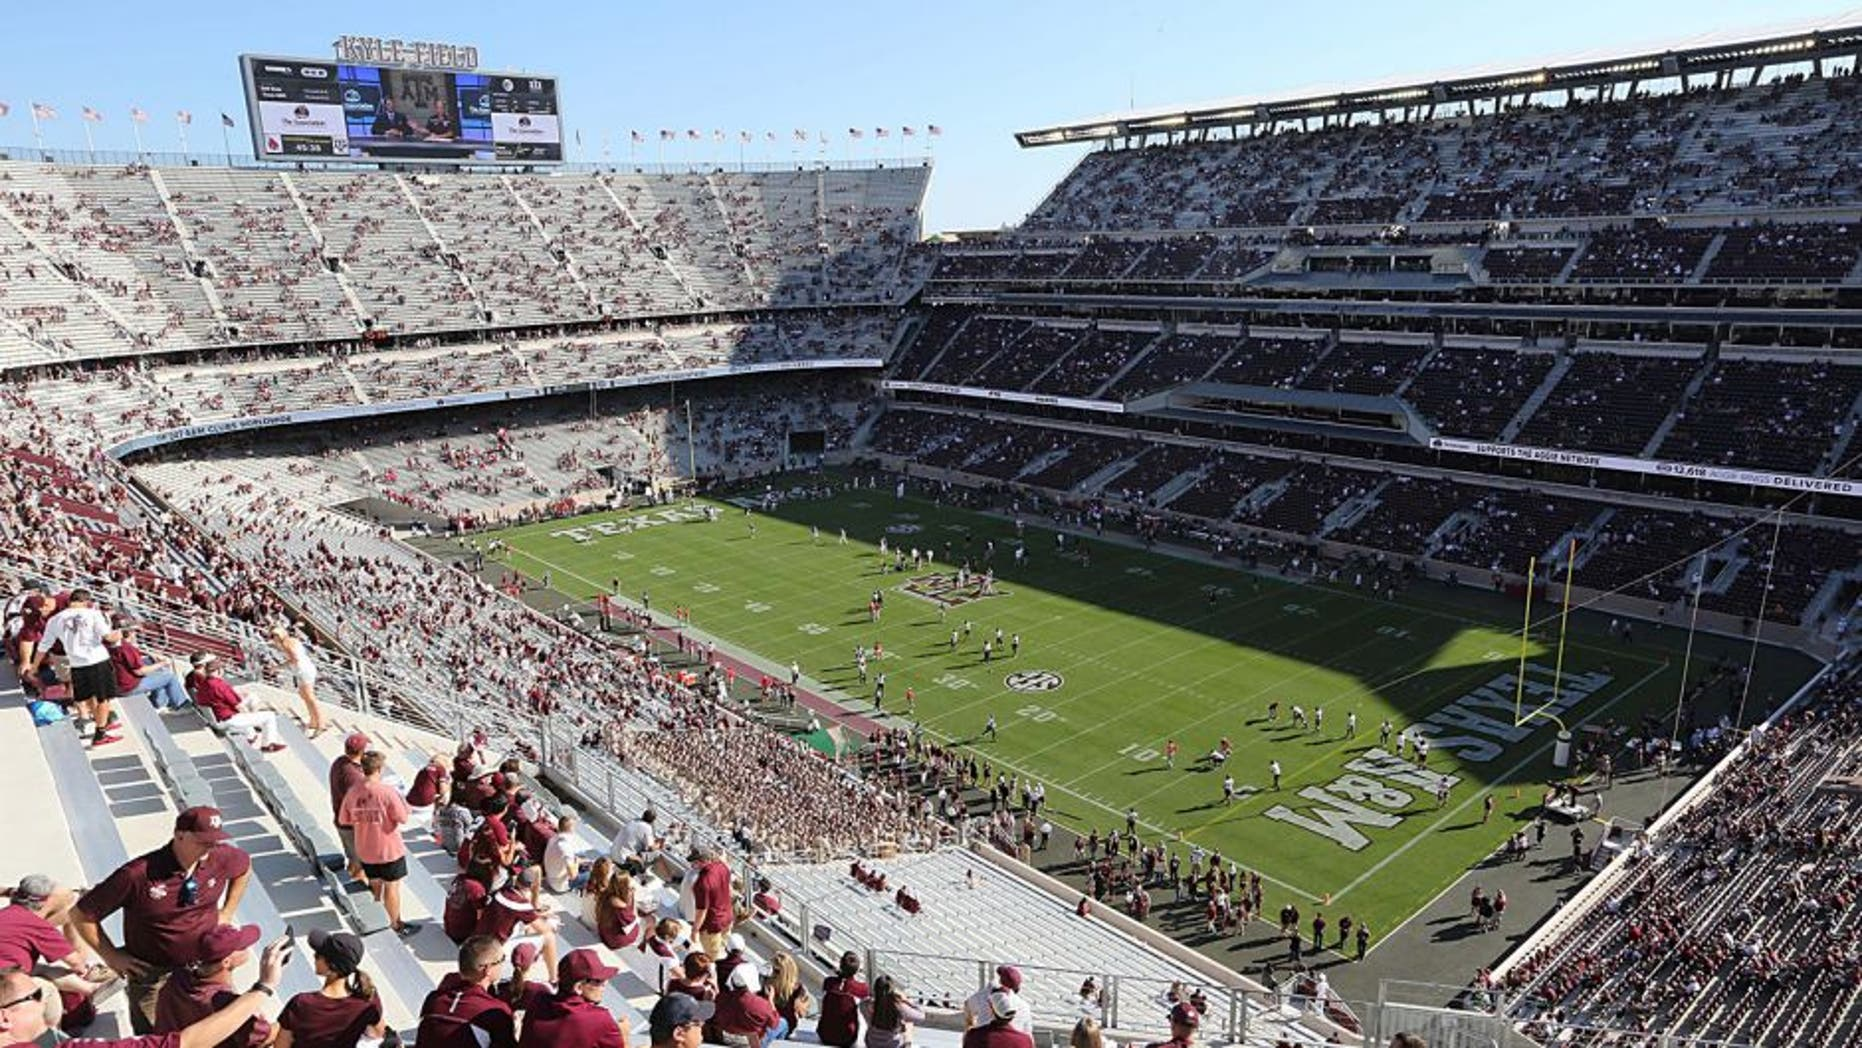 Sep 12, 2015; College Station, TX, USA; A general view while the Texas A&M Aggies and Ball State Cardinals warm up prior to the game at Kyle Field. Mandatory Credit: Thomas B. Shea-USA TODAY Sports